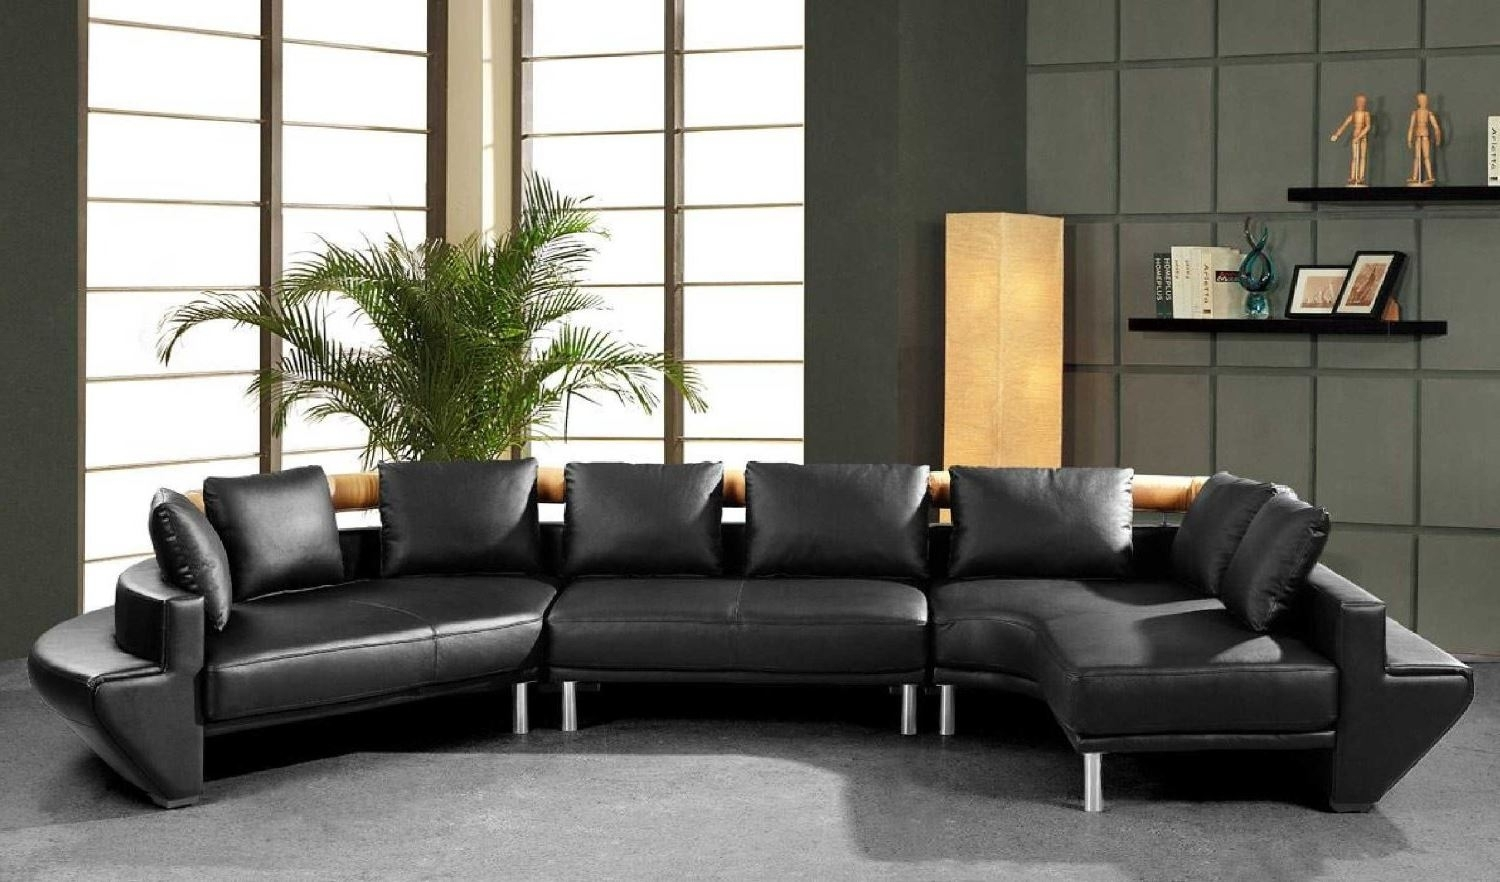 Furniture : 5060 Recliner Sectional Sofa Costco $699 Corner Couch with Joining Hardware Sectional Sofas (Image 5 of 10)